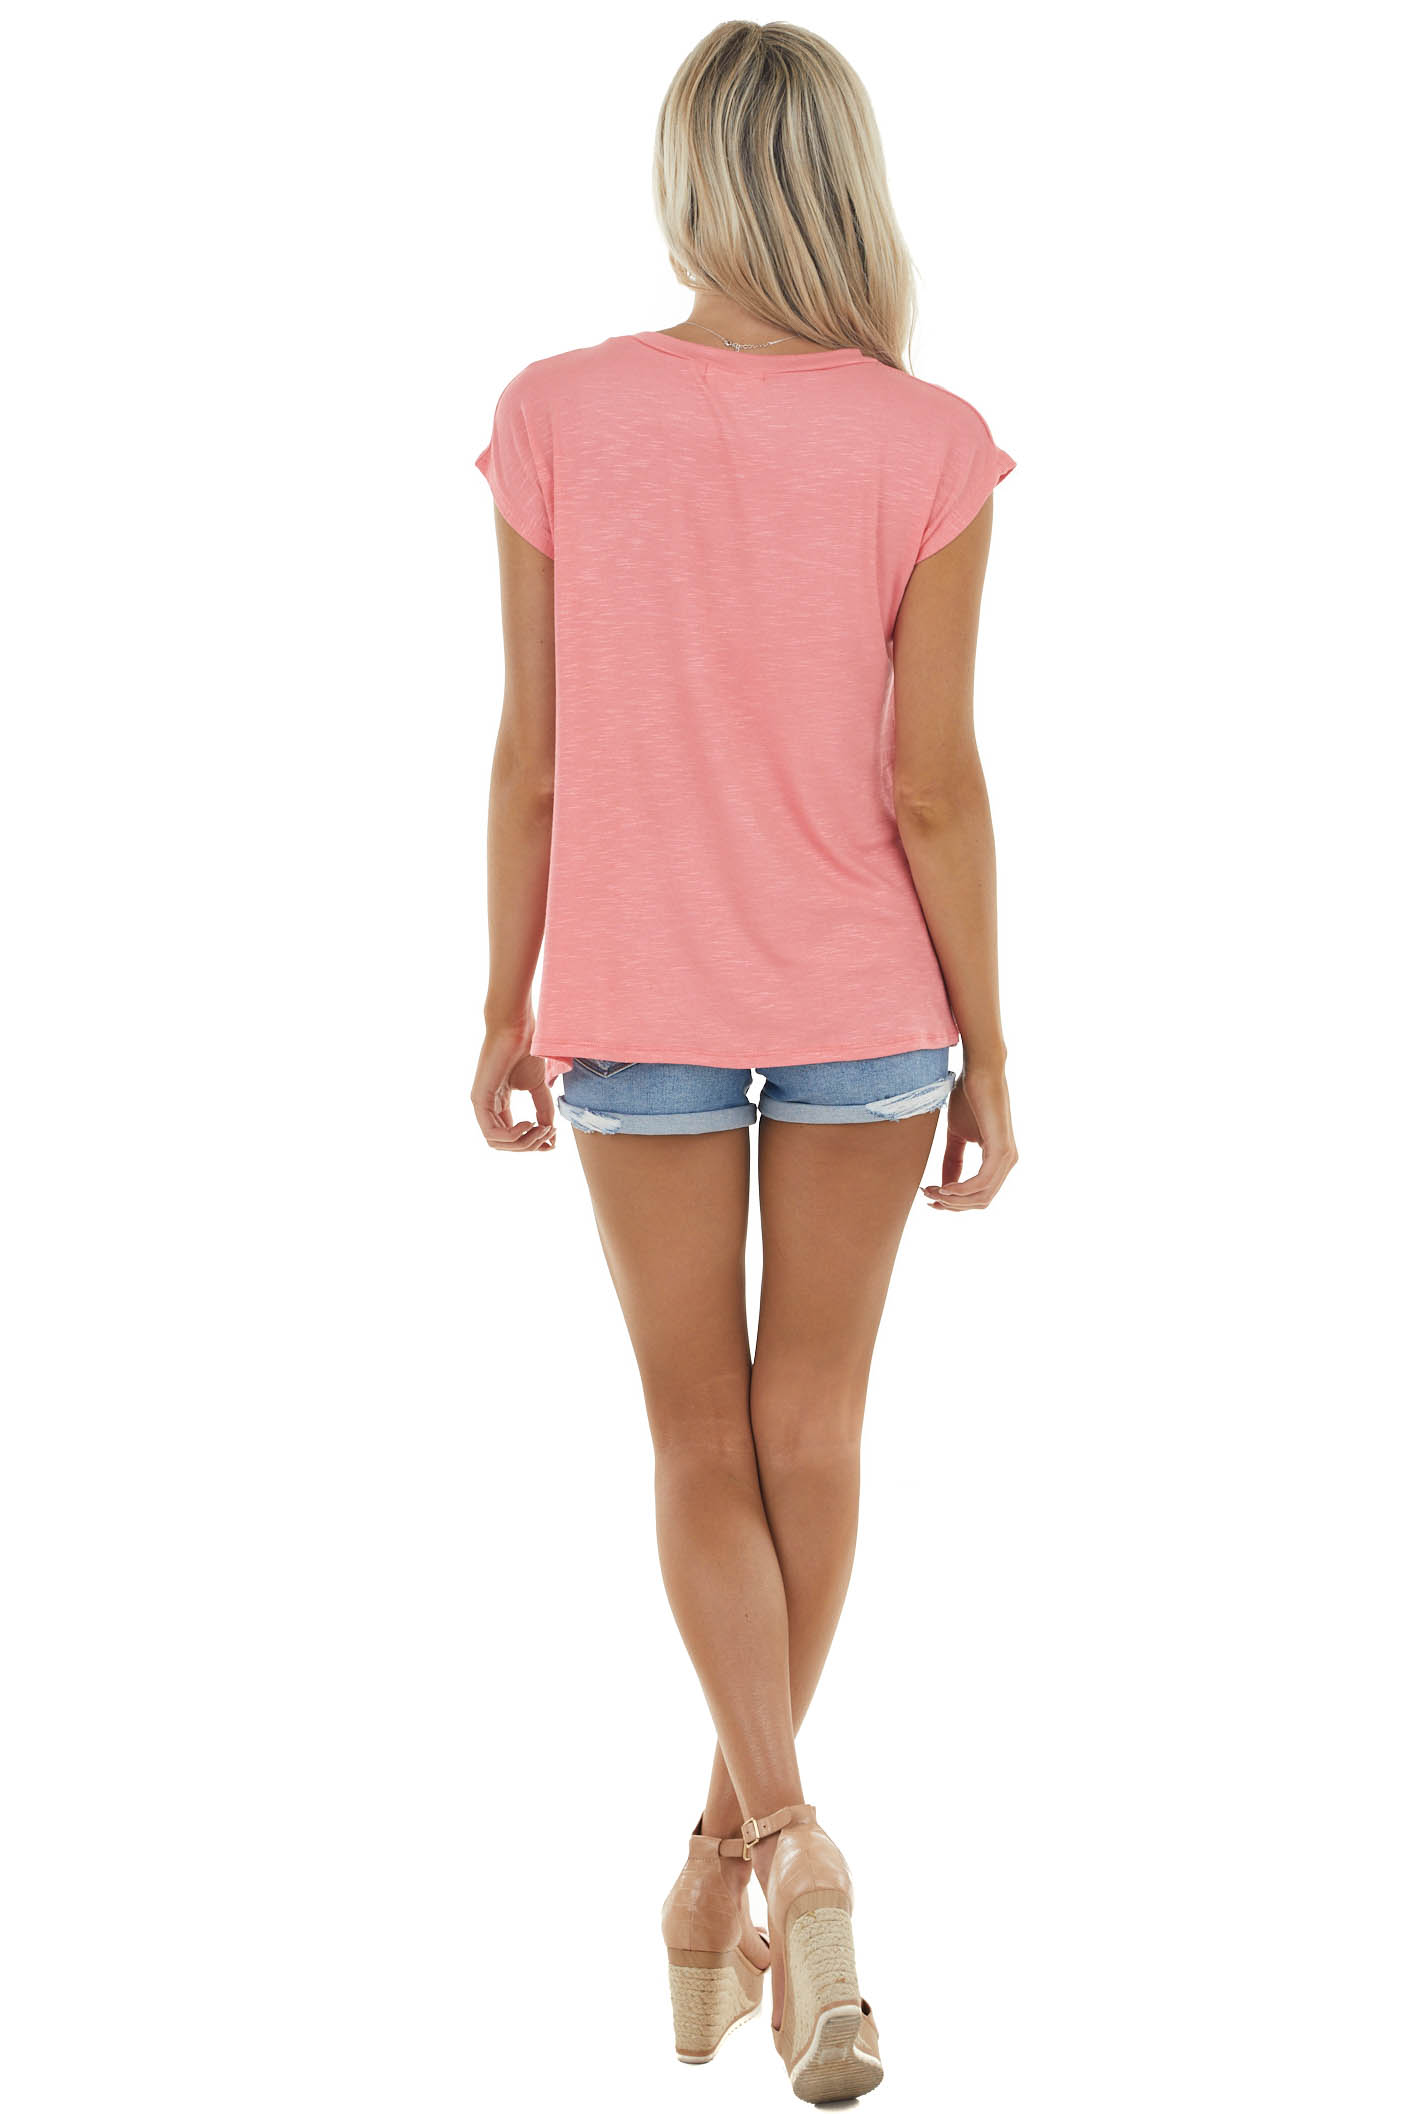 Watermelon Short Sleeve Textured Knit Top with Front Pocket